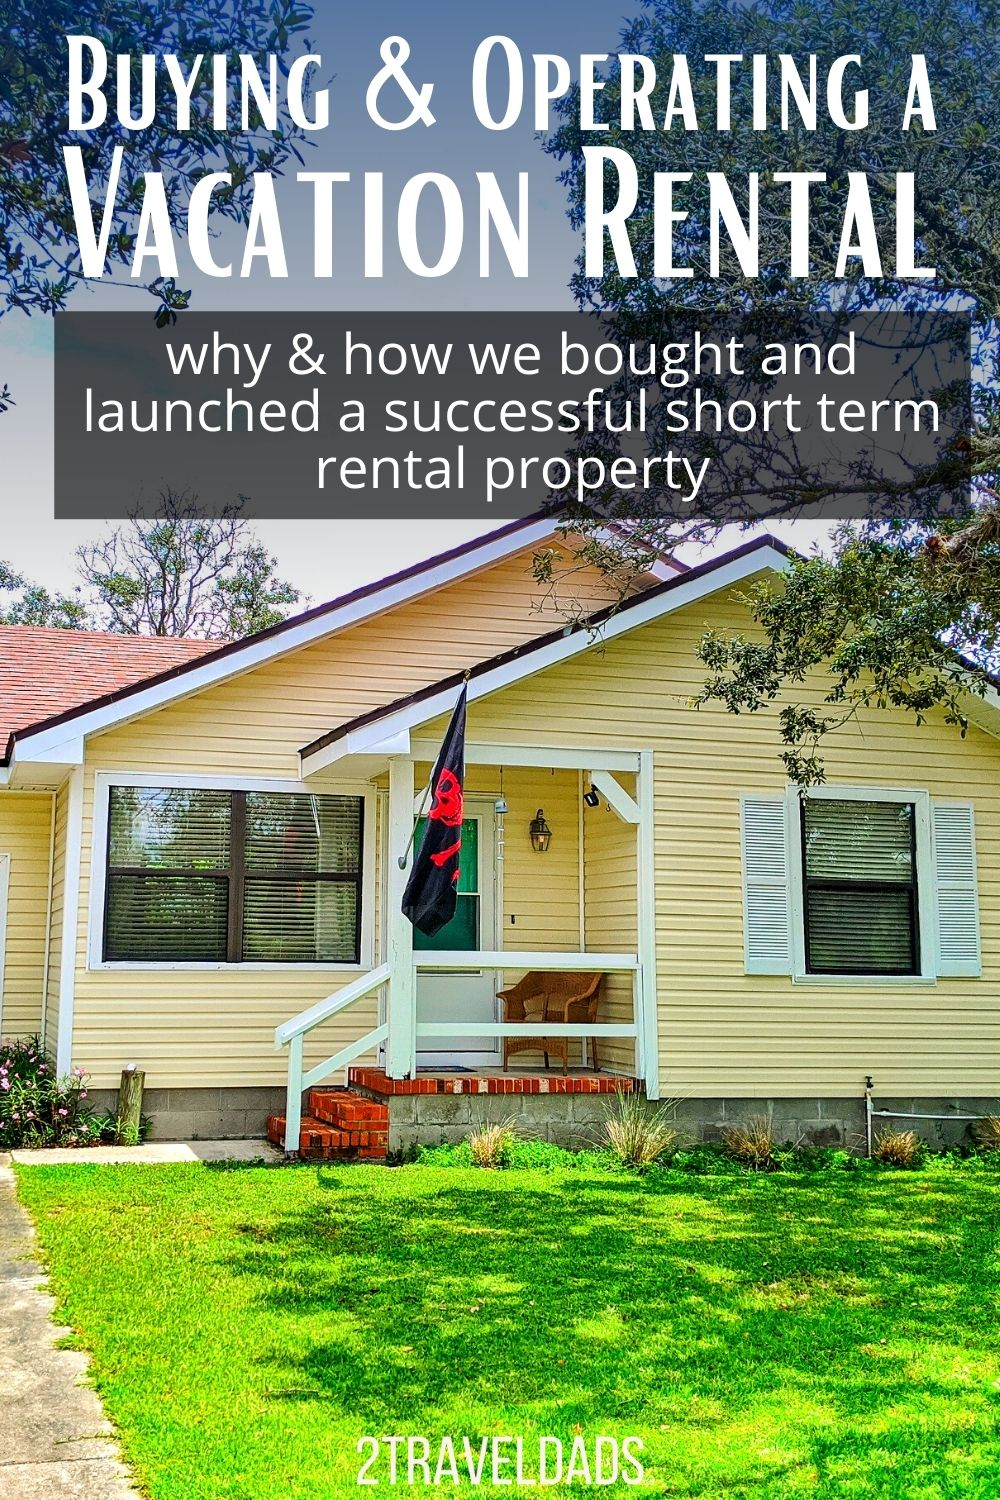 Buying a vacation rental can be complicated. We bought, fixed up, and ran a profitable short term rental in less than a month. Here's how we did it and tips for running a successful vacation rental in Florida (or anywhere).